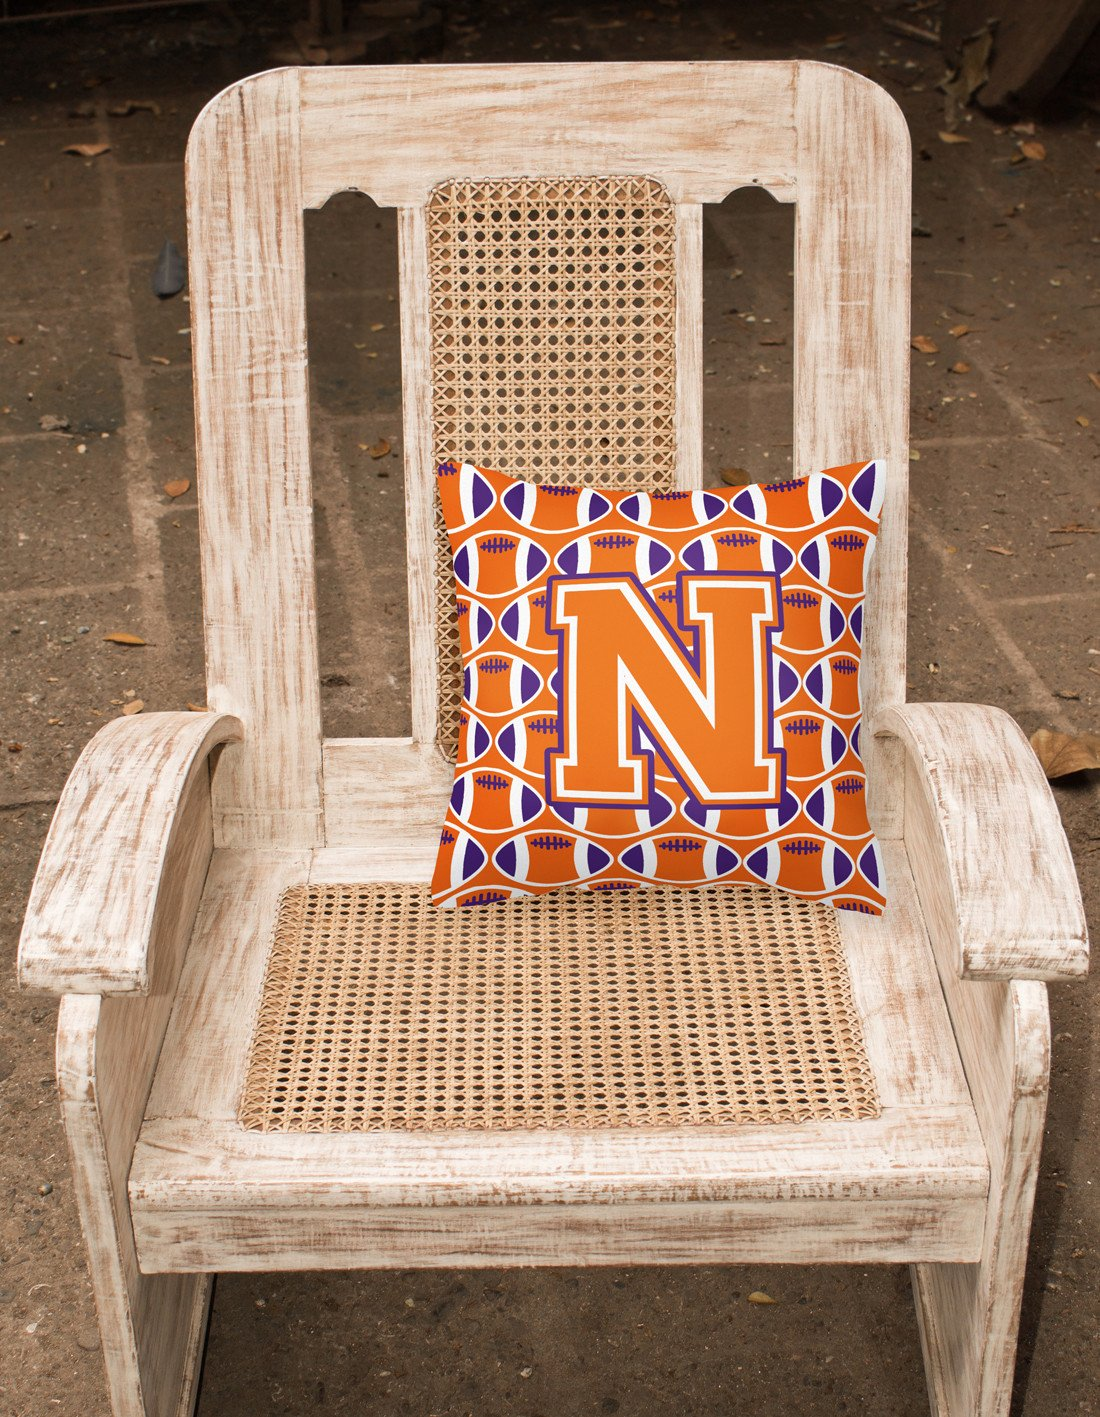 Letter N Football Orange, White and Regalia Fabric Decorative Pillow CJ1072-NPW1414 by Caroline's Treasures